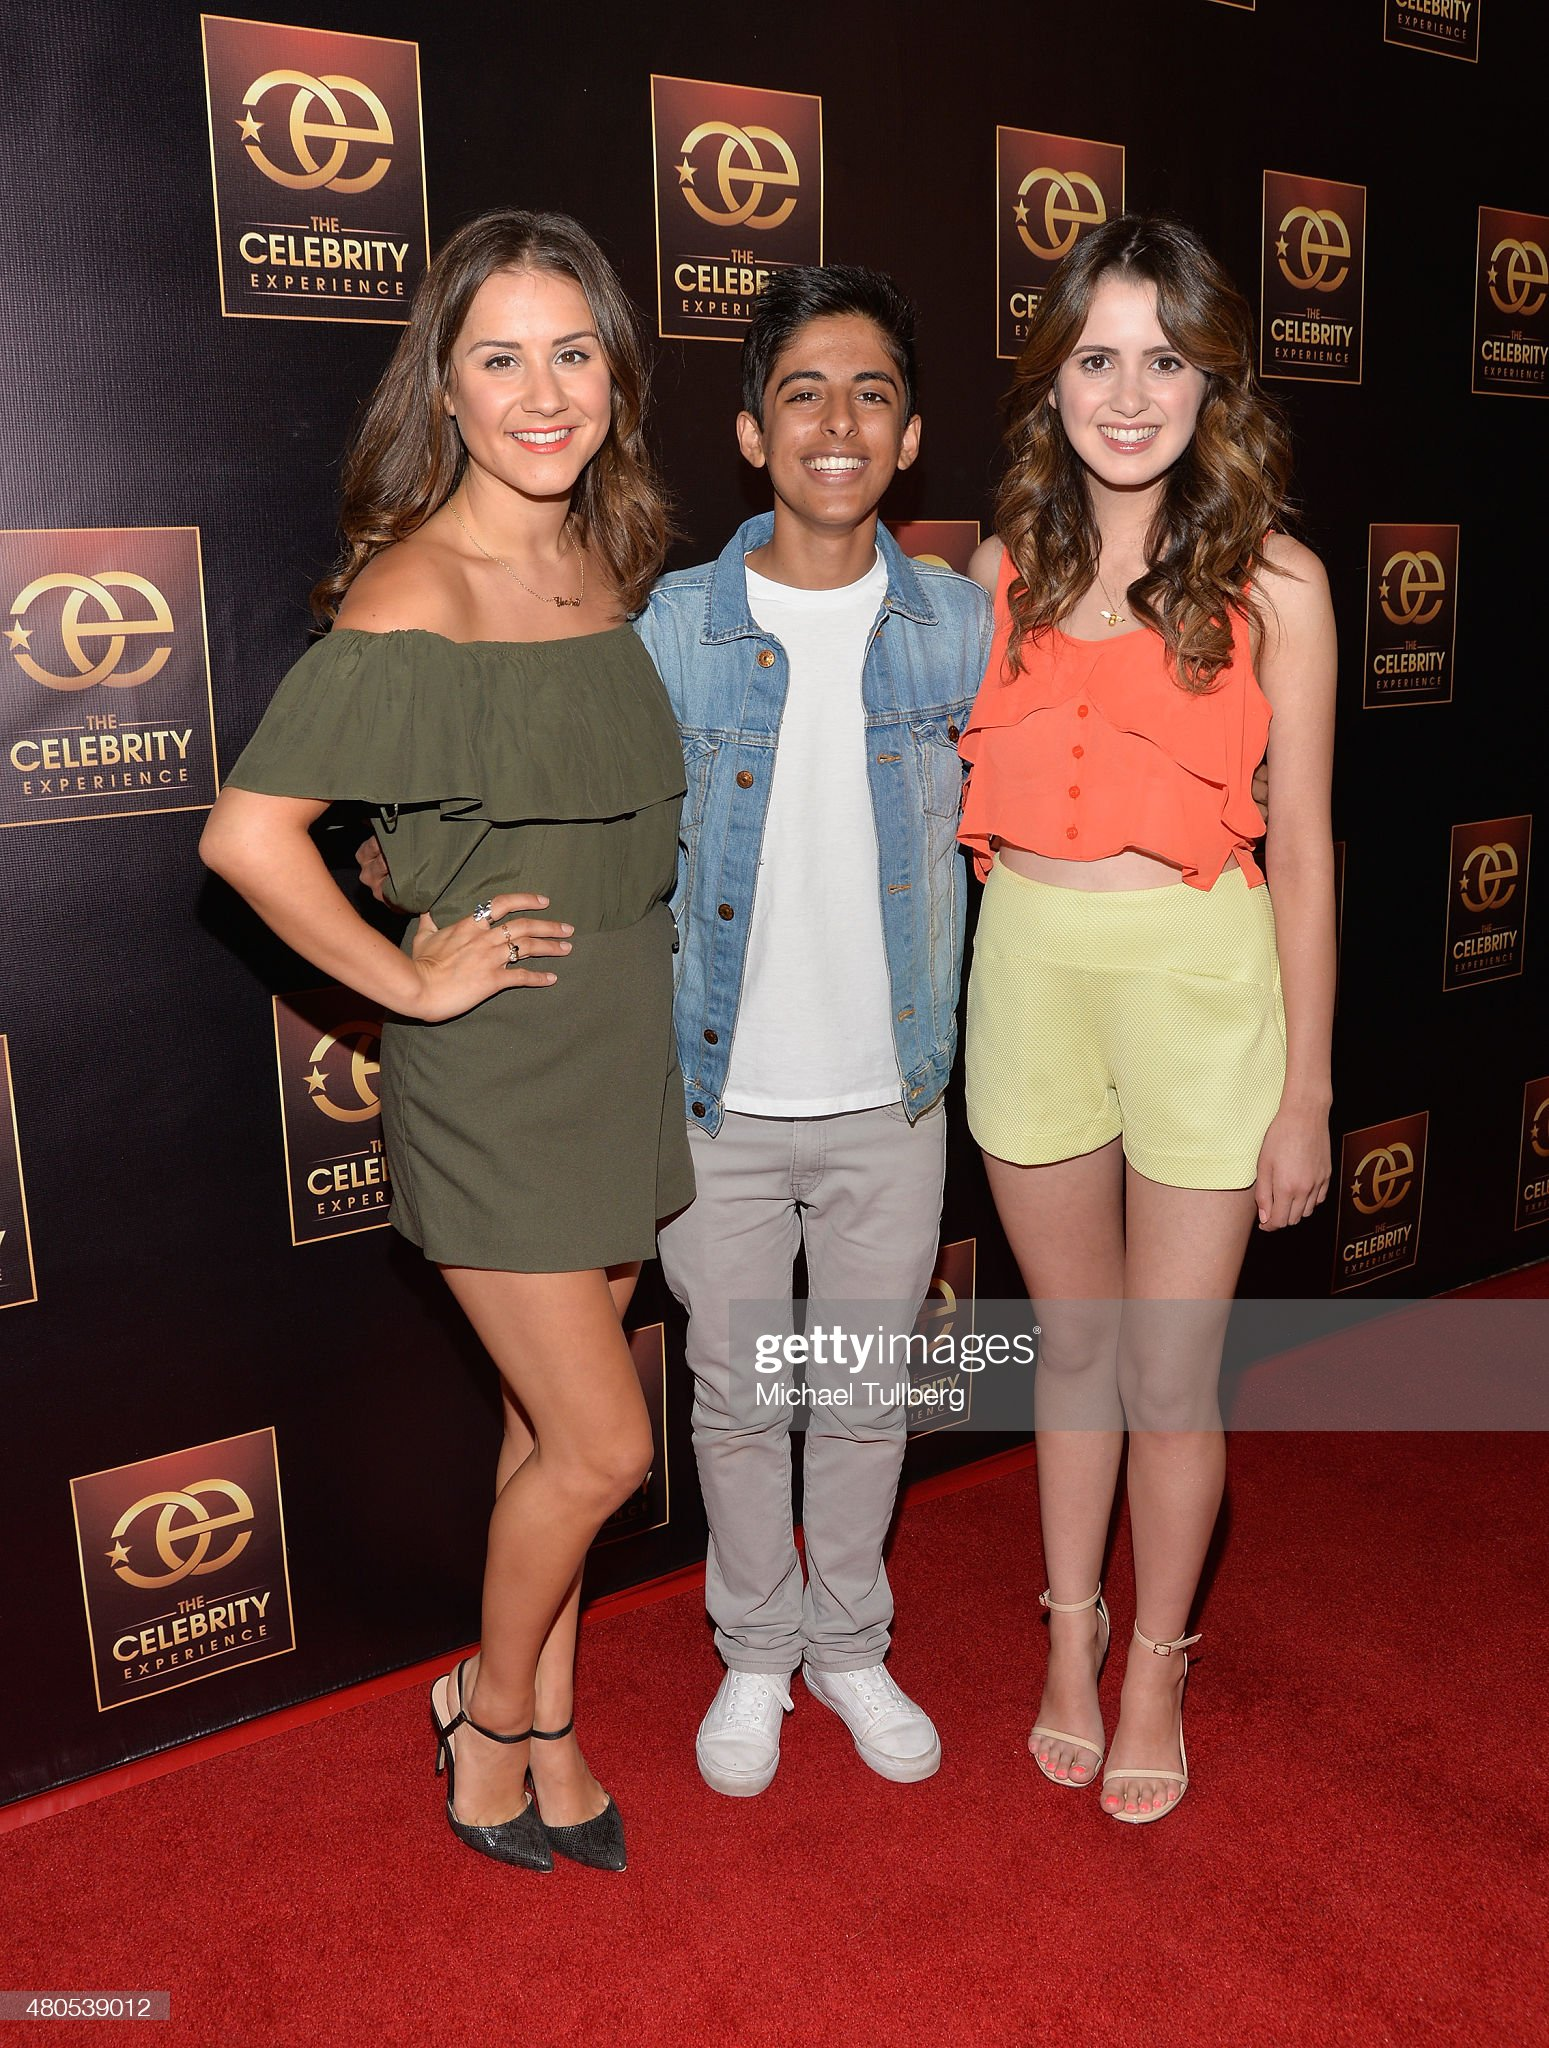 ¿Cuánto mide Karan Brar? - Real height Actors-electra-formosa-karan-brar-and-laura-marano-attend-the-panel-picture-id480539012?s=2048x2048